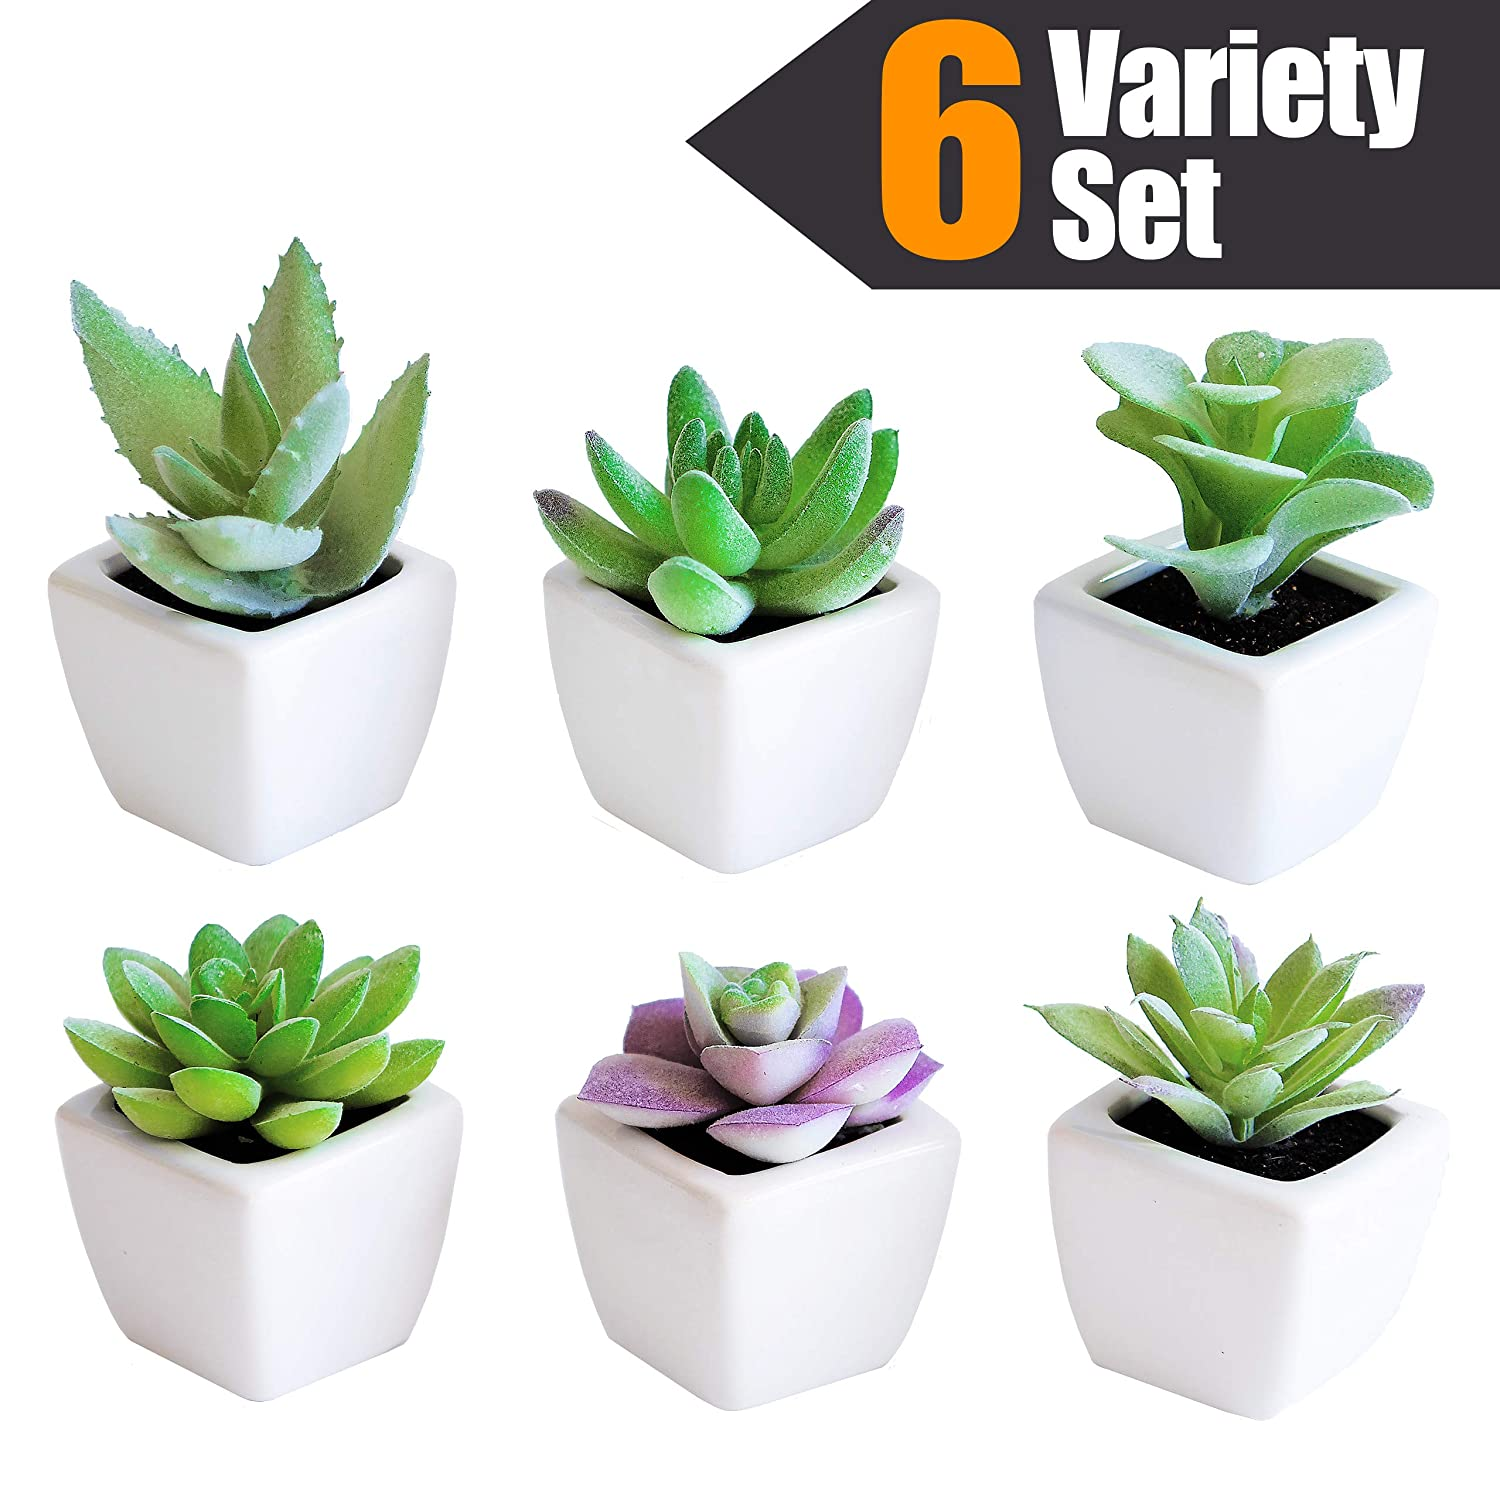 Sophia's Garden Artificial Succulent Plants with Pots – Realistic Greenery Mini Potted Faux Plant Arrangements Home Office Decor, Dorm Room, Kitchen (Green (Regular), White (Ceramic) Pot)